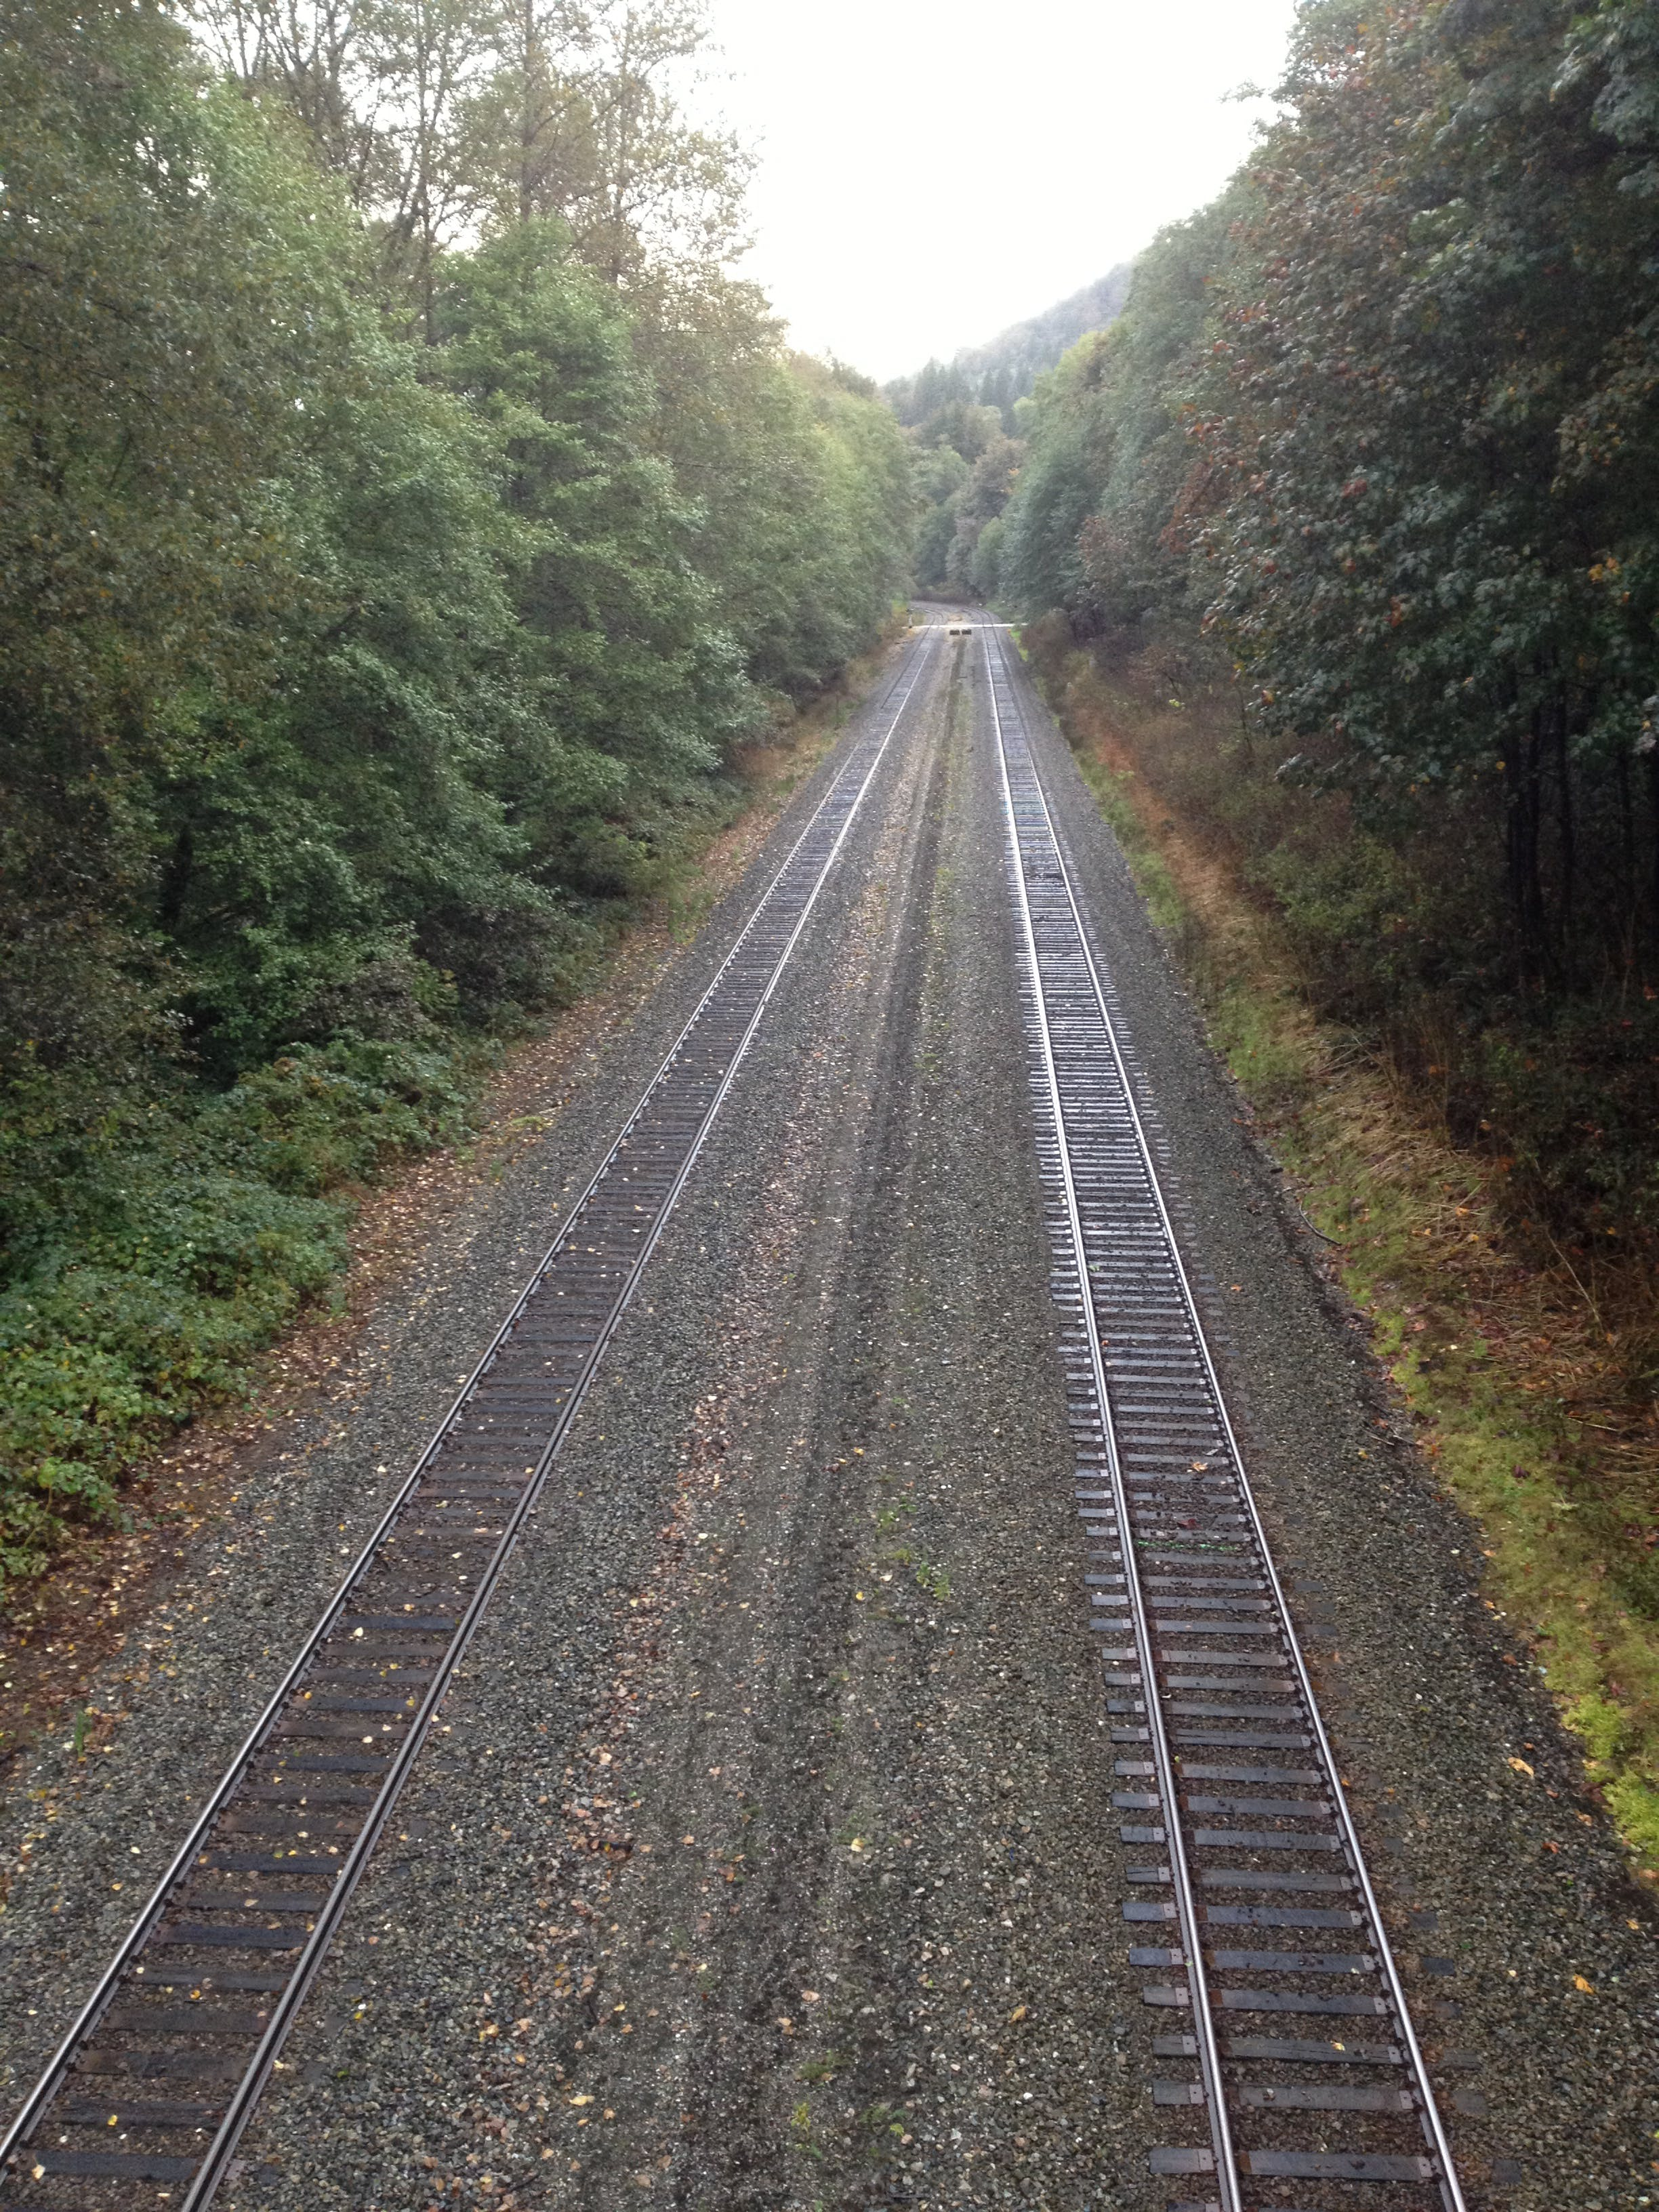 Free stock photo of perspective, summer, train tracks, trees